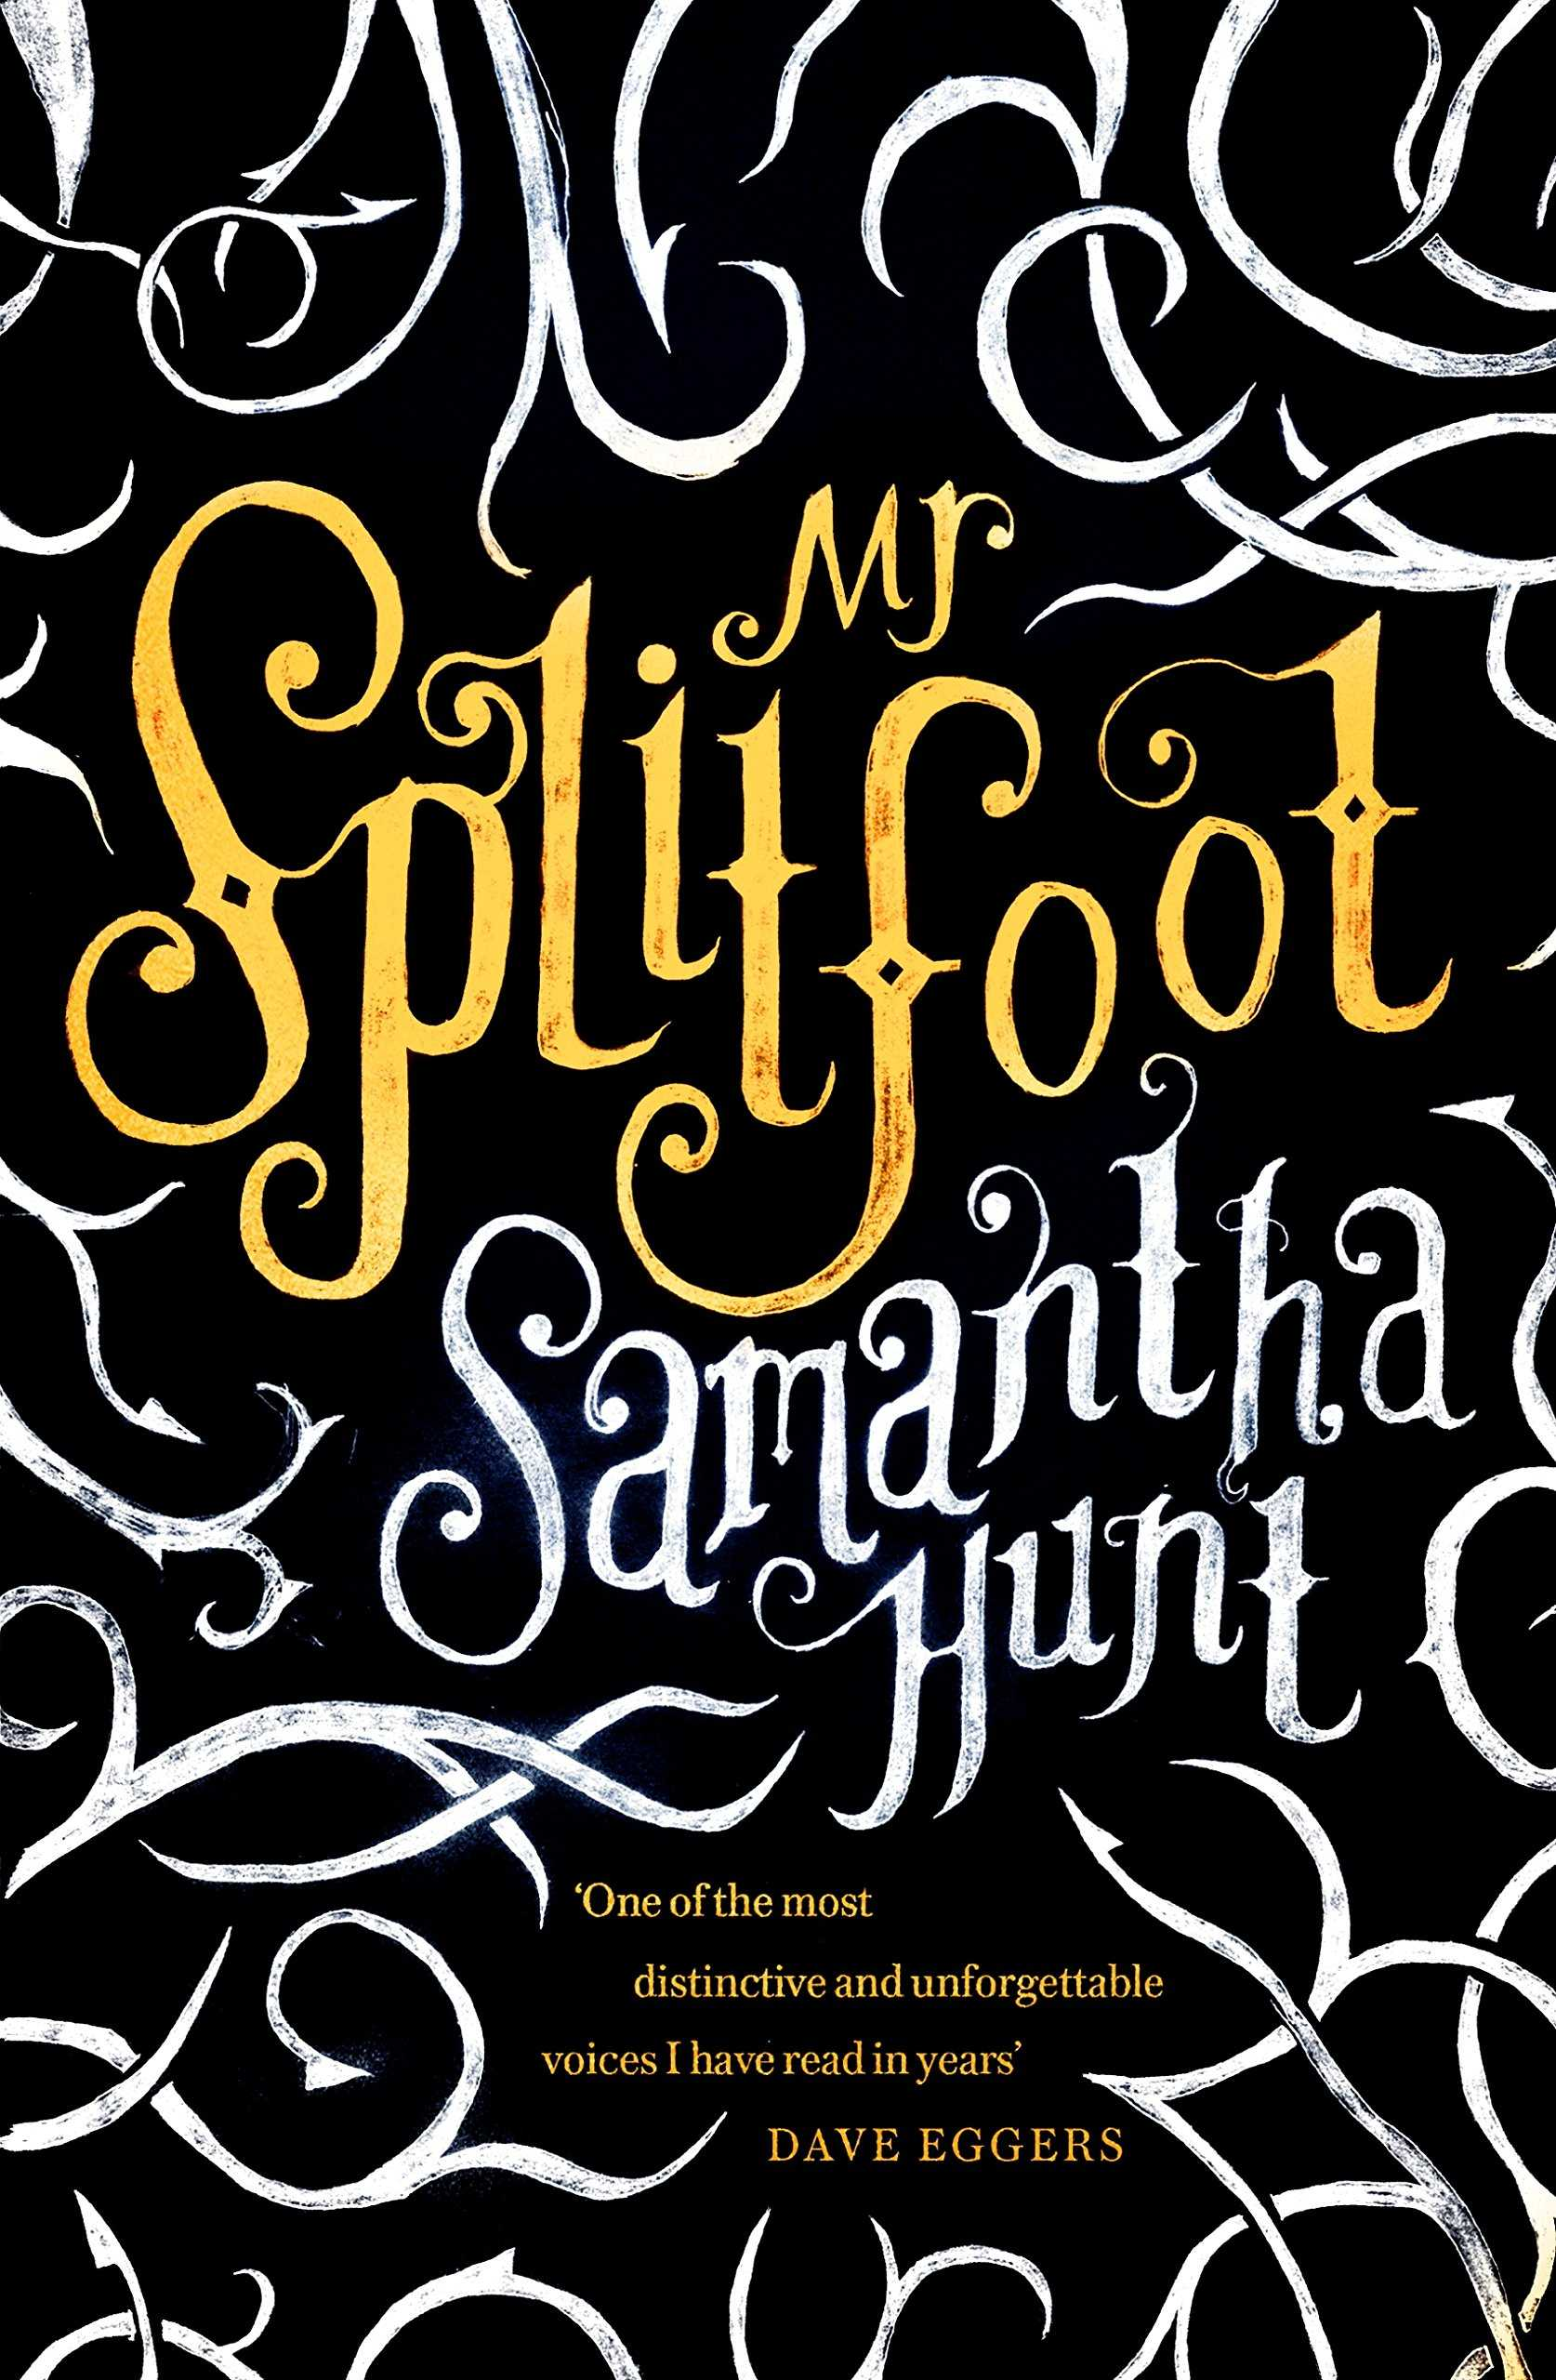 Book Review: Mr Splitfoot - Samantha Hunt | Mr Splitfoot